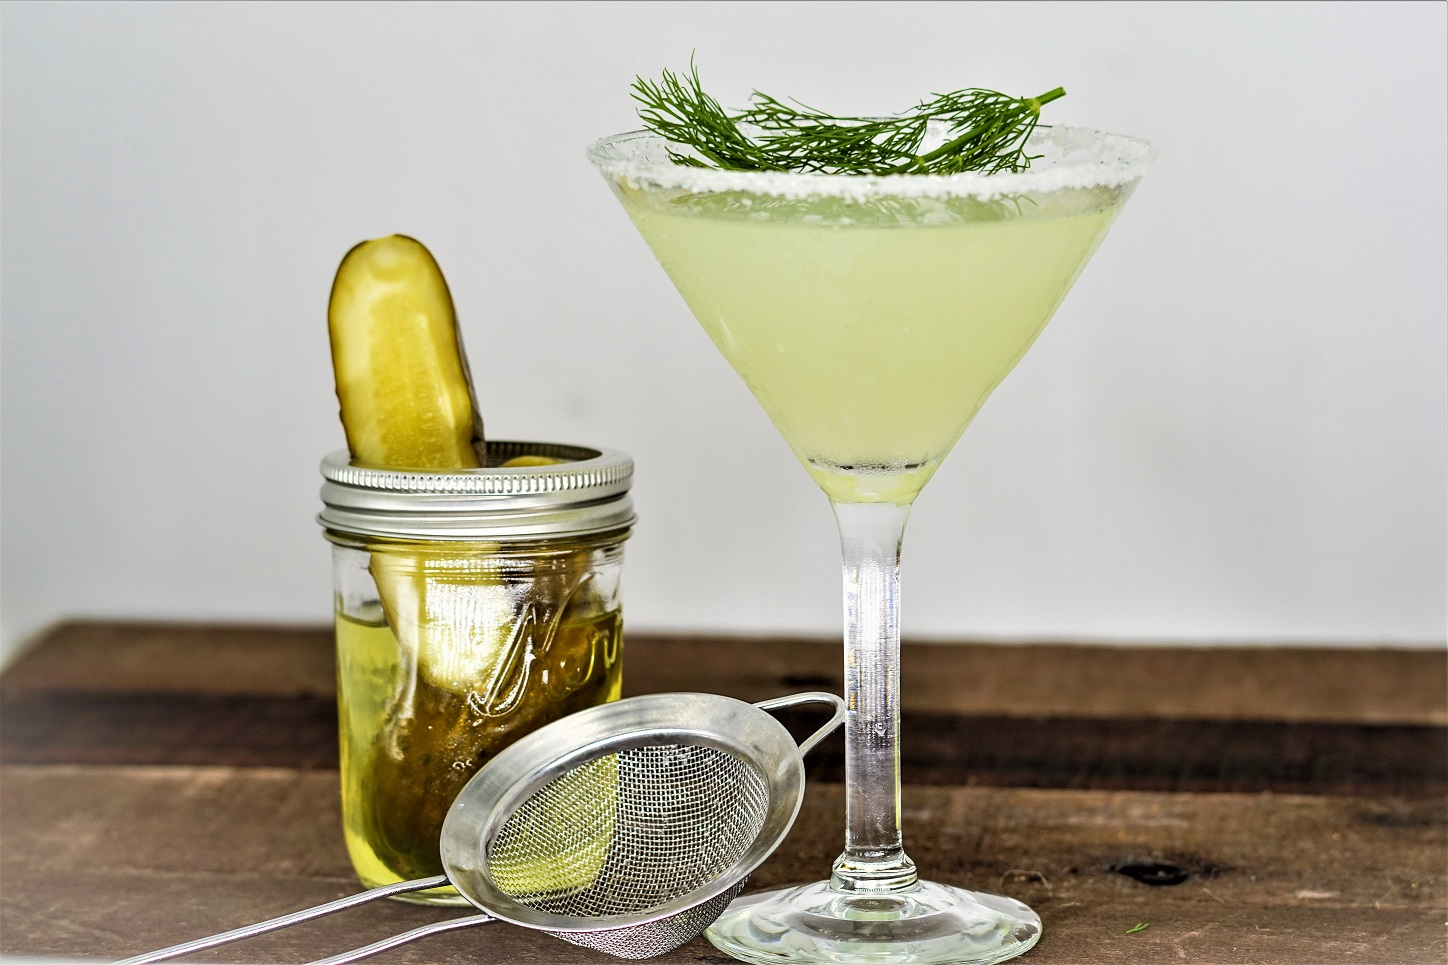 Dill Pickle Martini with jar of pickles and cocktail strainer